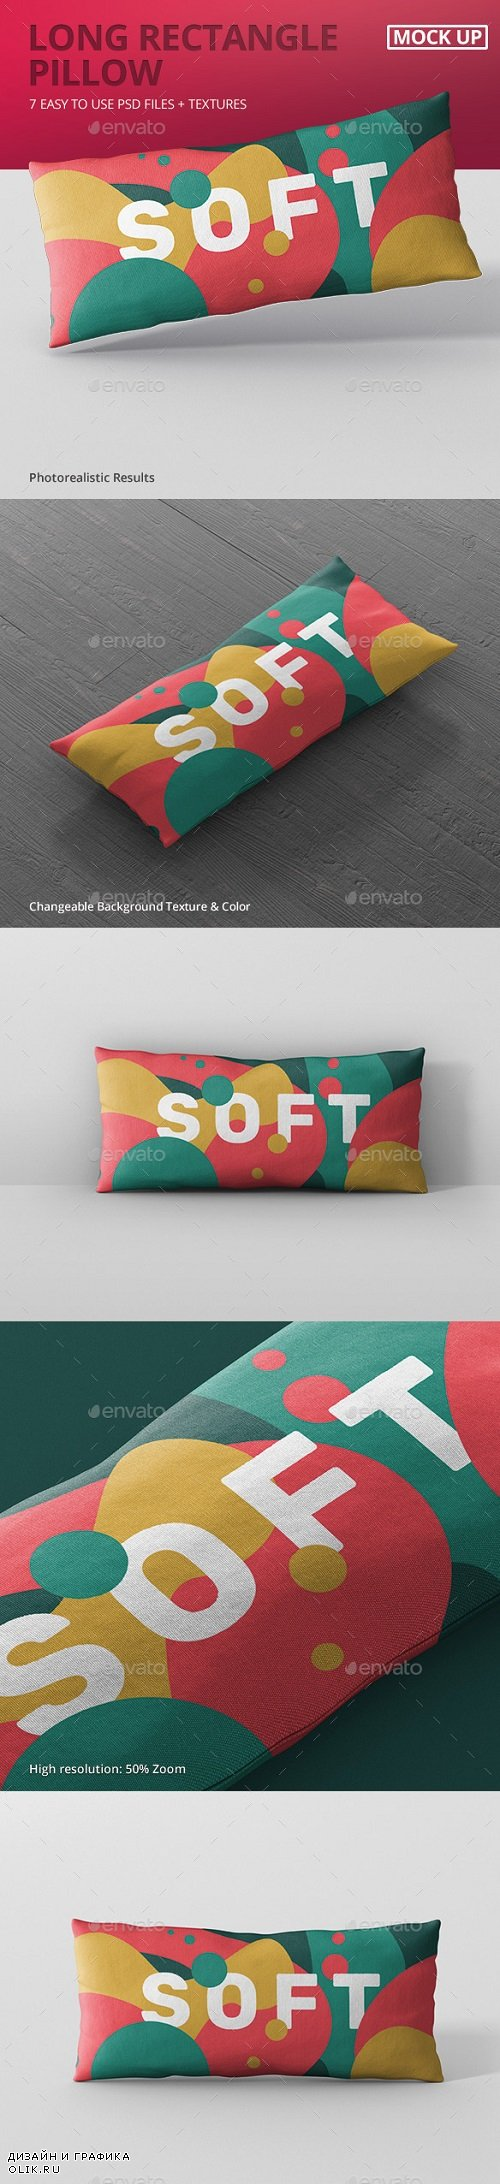 Pillow Mockup - Long Rectangle 20138983